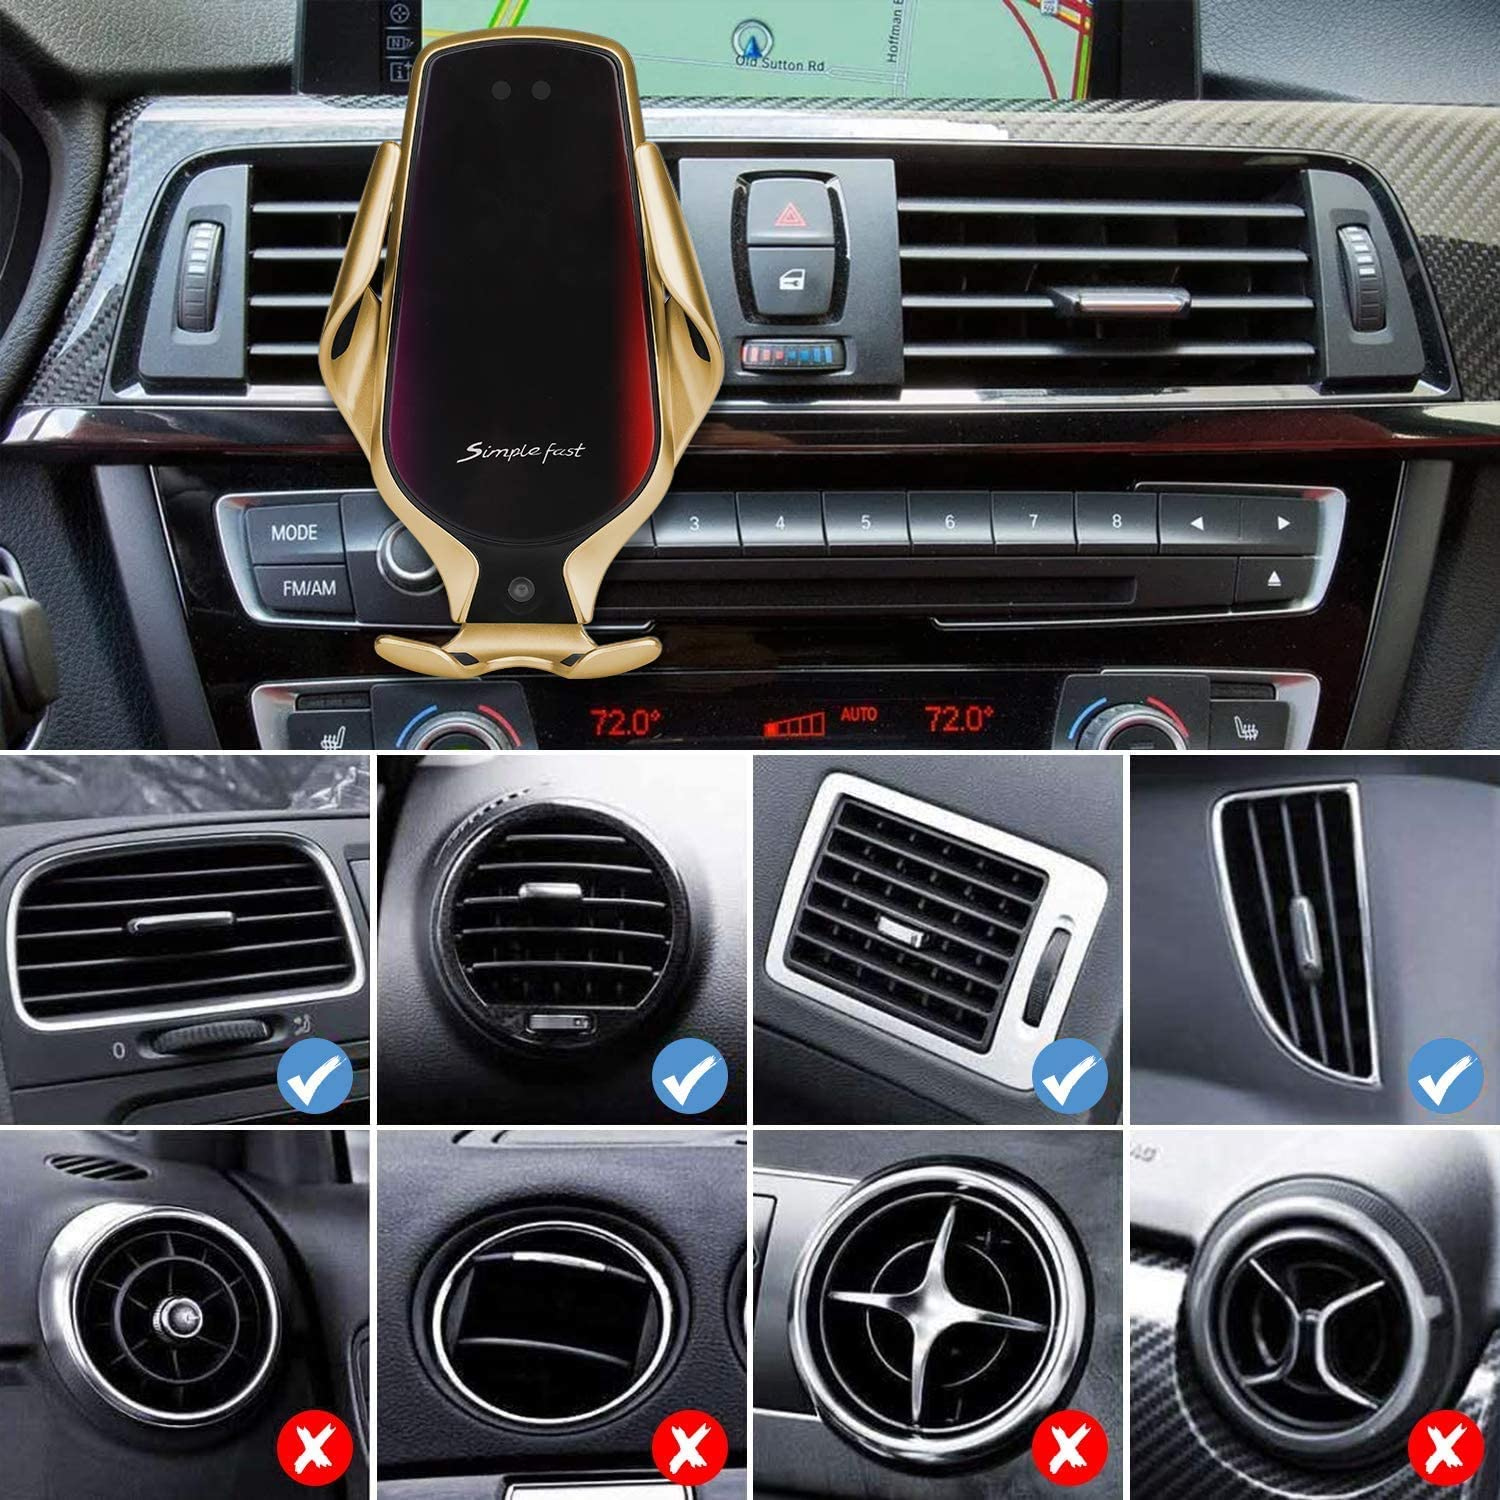 Samsung Galaxy Note 9 // S9 // S9 + Windshield Dash Air Vent Phone Holder for iPhone 11 // Xs//Xs Max//XR//X // 8 Wireless Car Charger IR Inducing Smart Sensor Auto-Clamping Car Mount Black